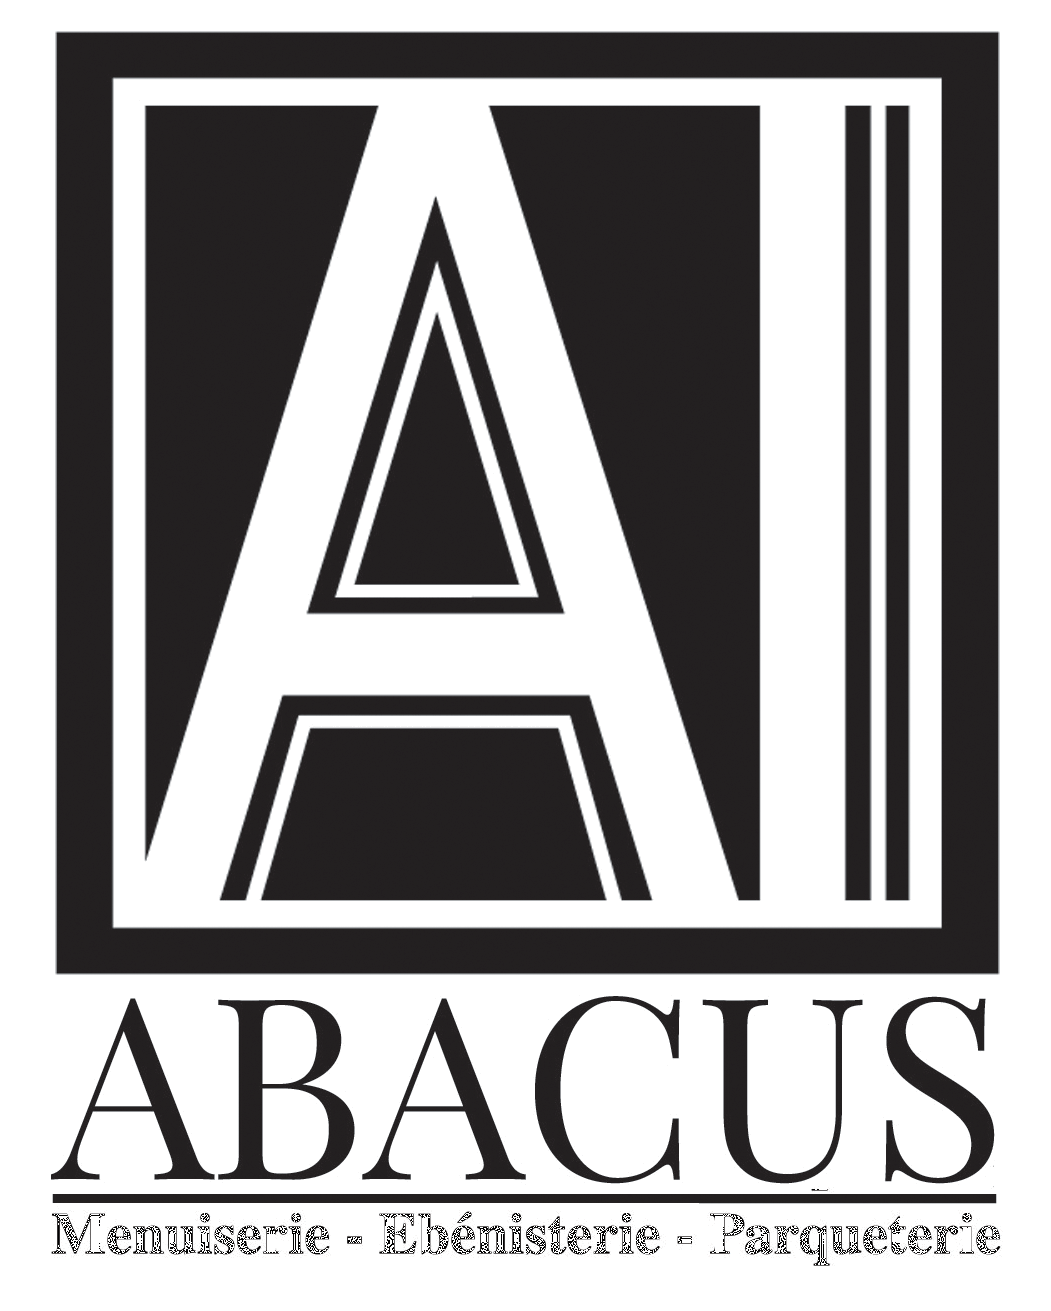 ABACUS WOOD WORKING S.A.S